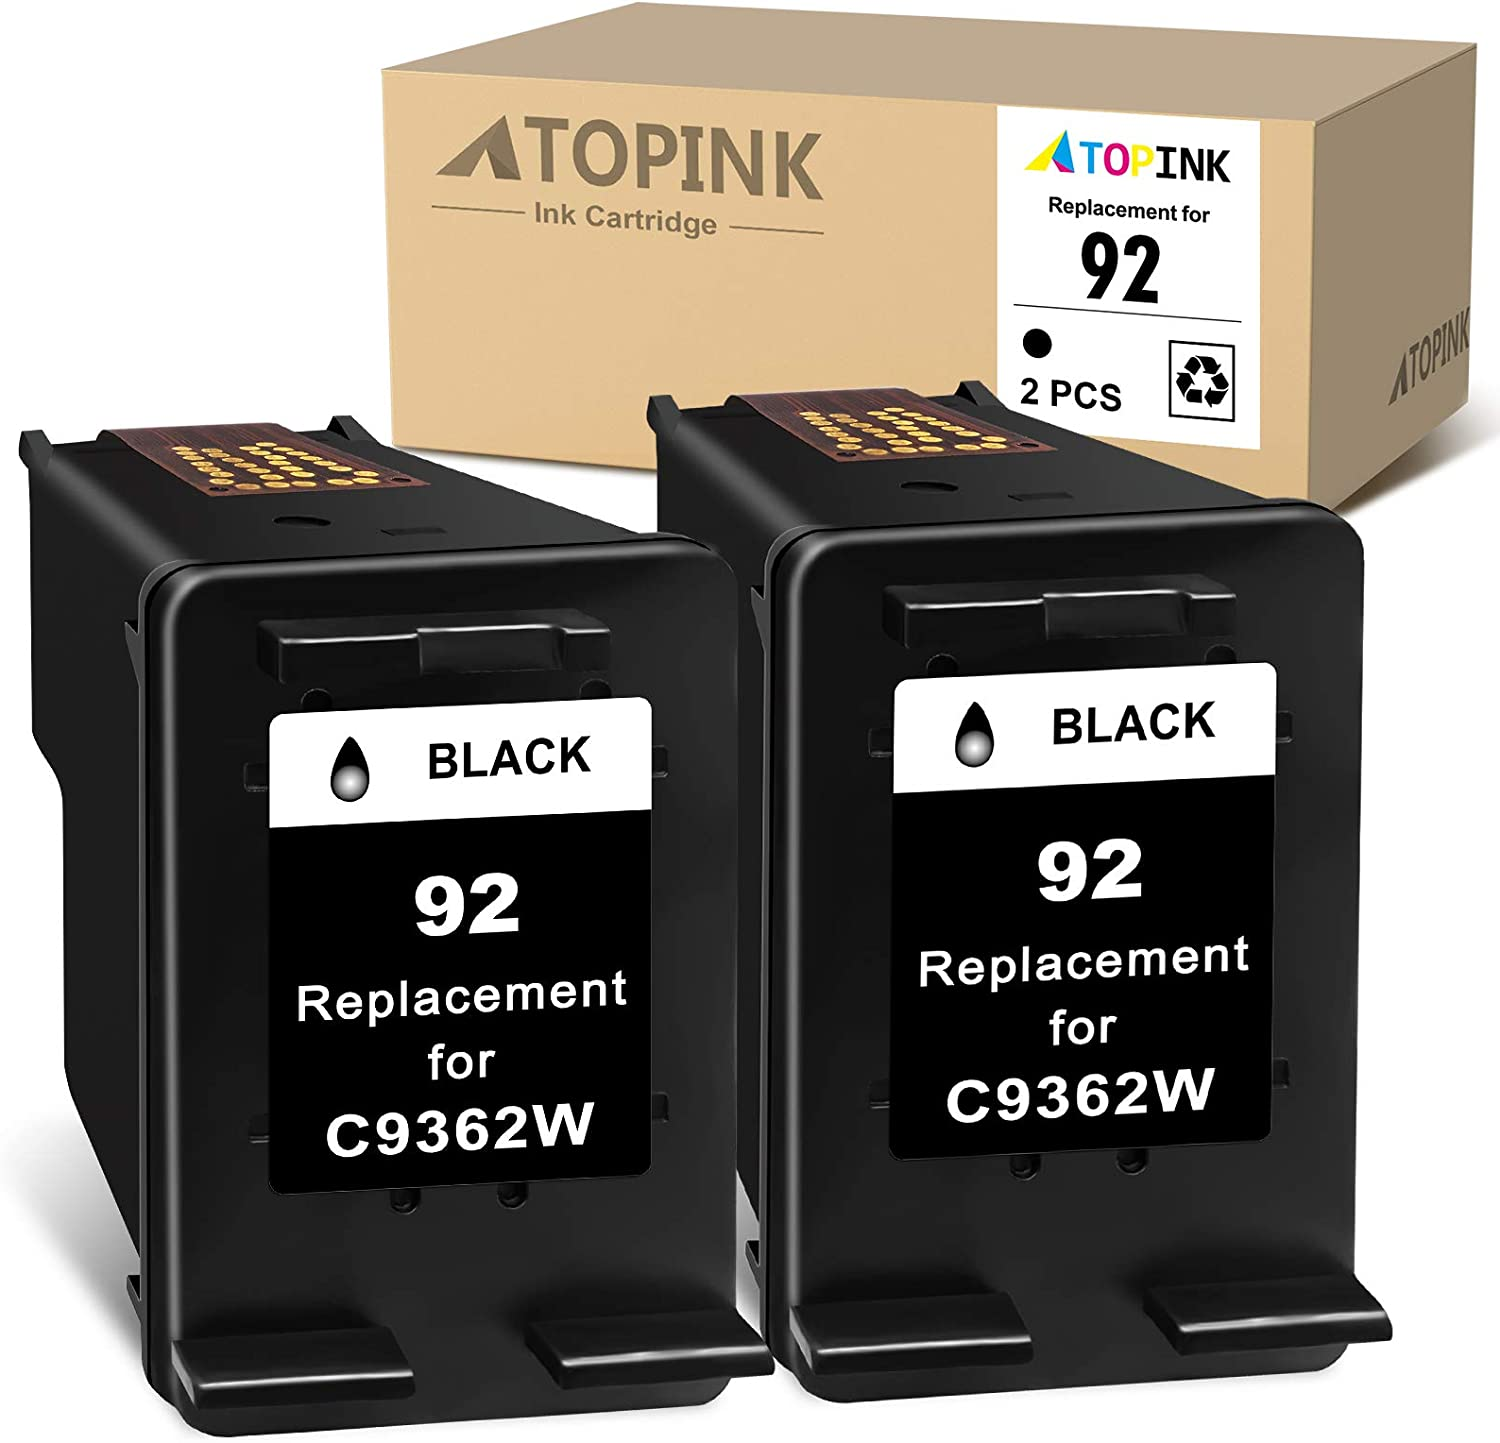 ATOPINK Remanufactured Ink Cartridge Replacement for HP92 92 Compatible with C3150 7850 C3180 C3190 C3140 Deskjet 5440 5420 PSC 1507 1510 1513 2525 Offcejet 6310XI 6310 6313 Printer (2 Black ) 2PCs